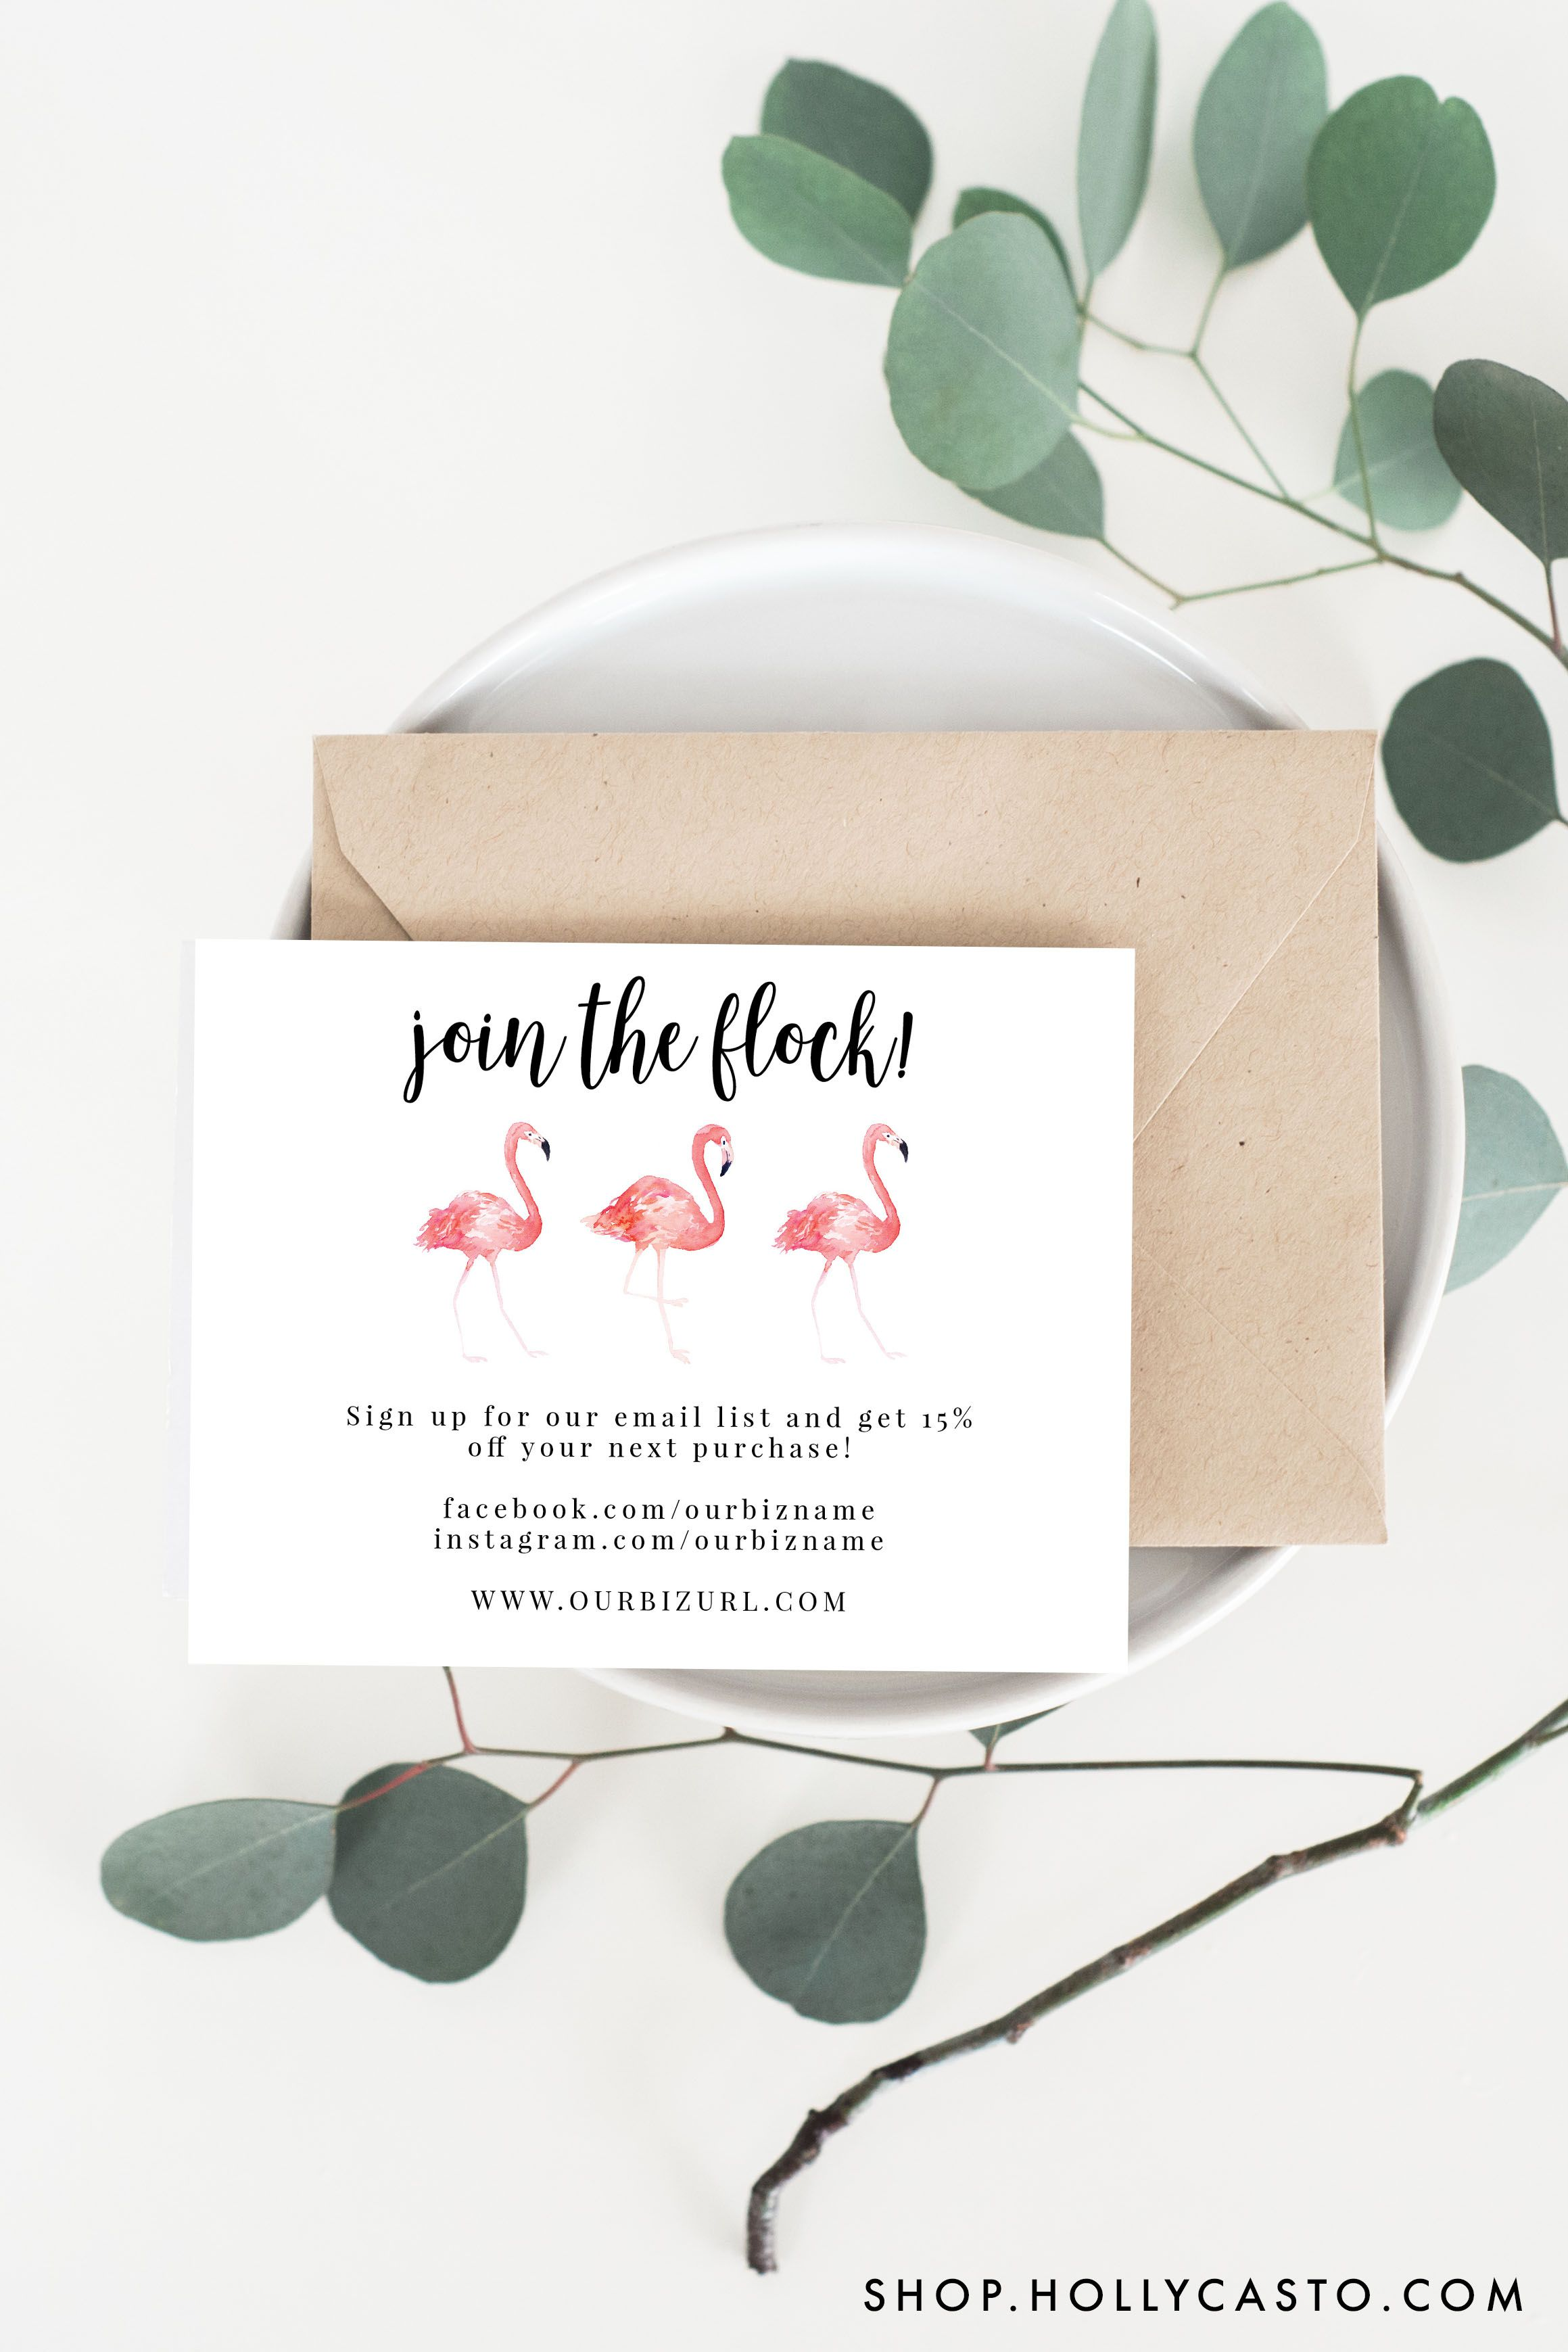 Instantly download, customize and print your own thank you cards for your online shop orders!<br ...